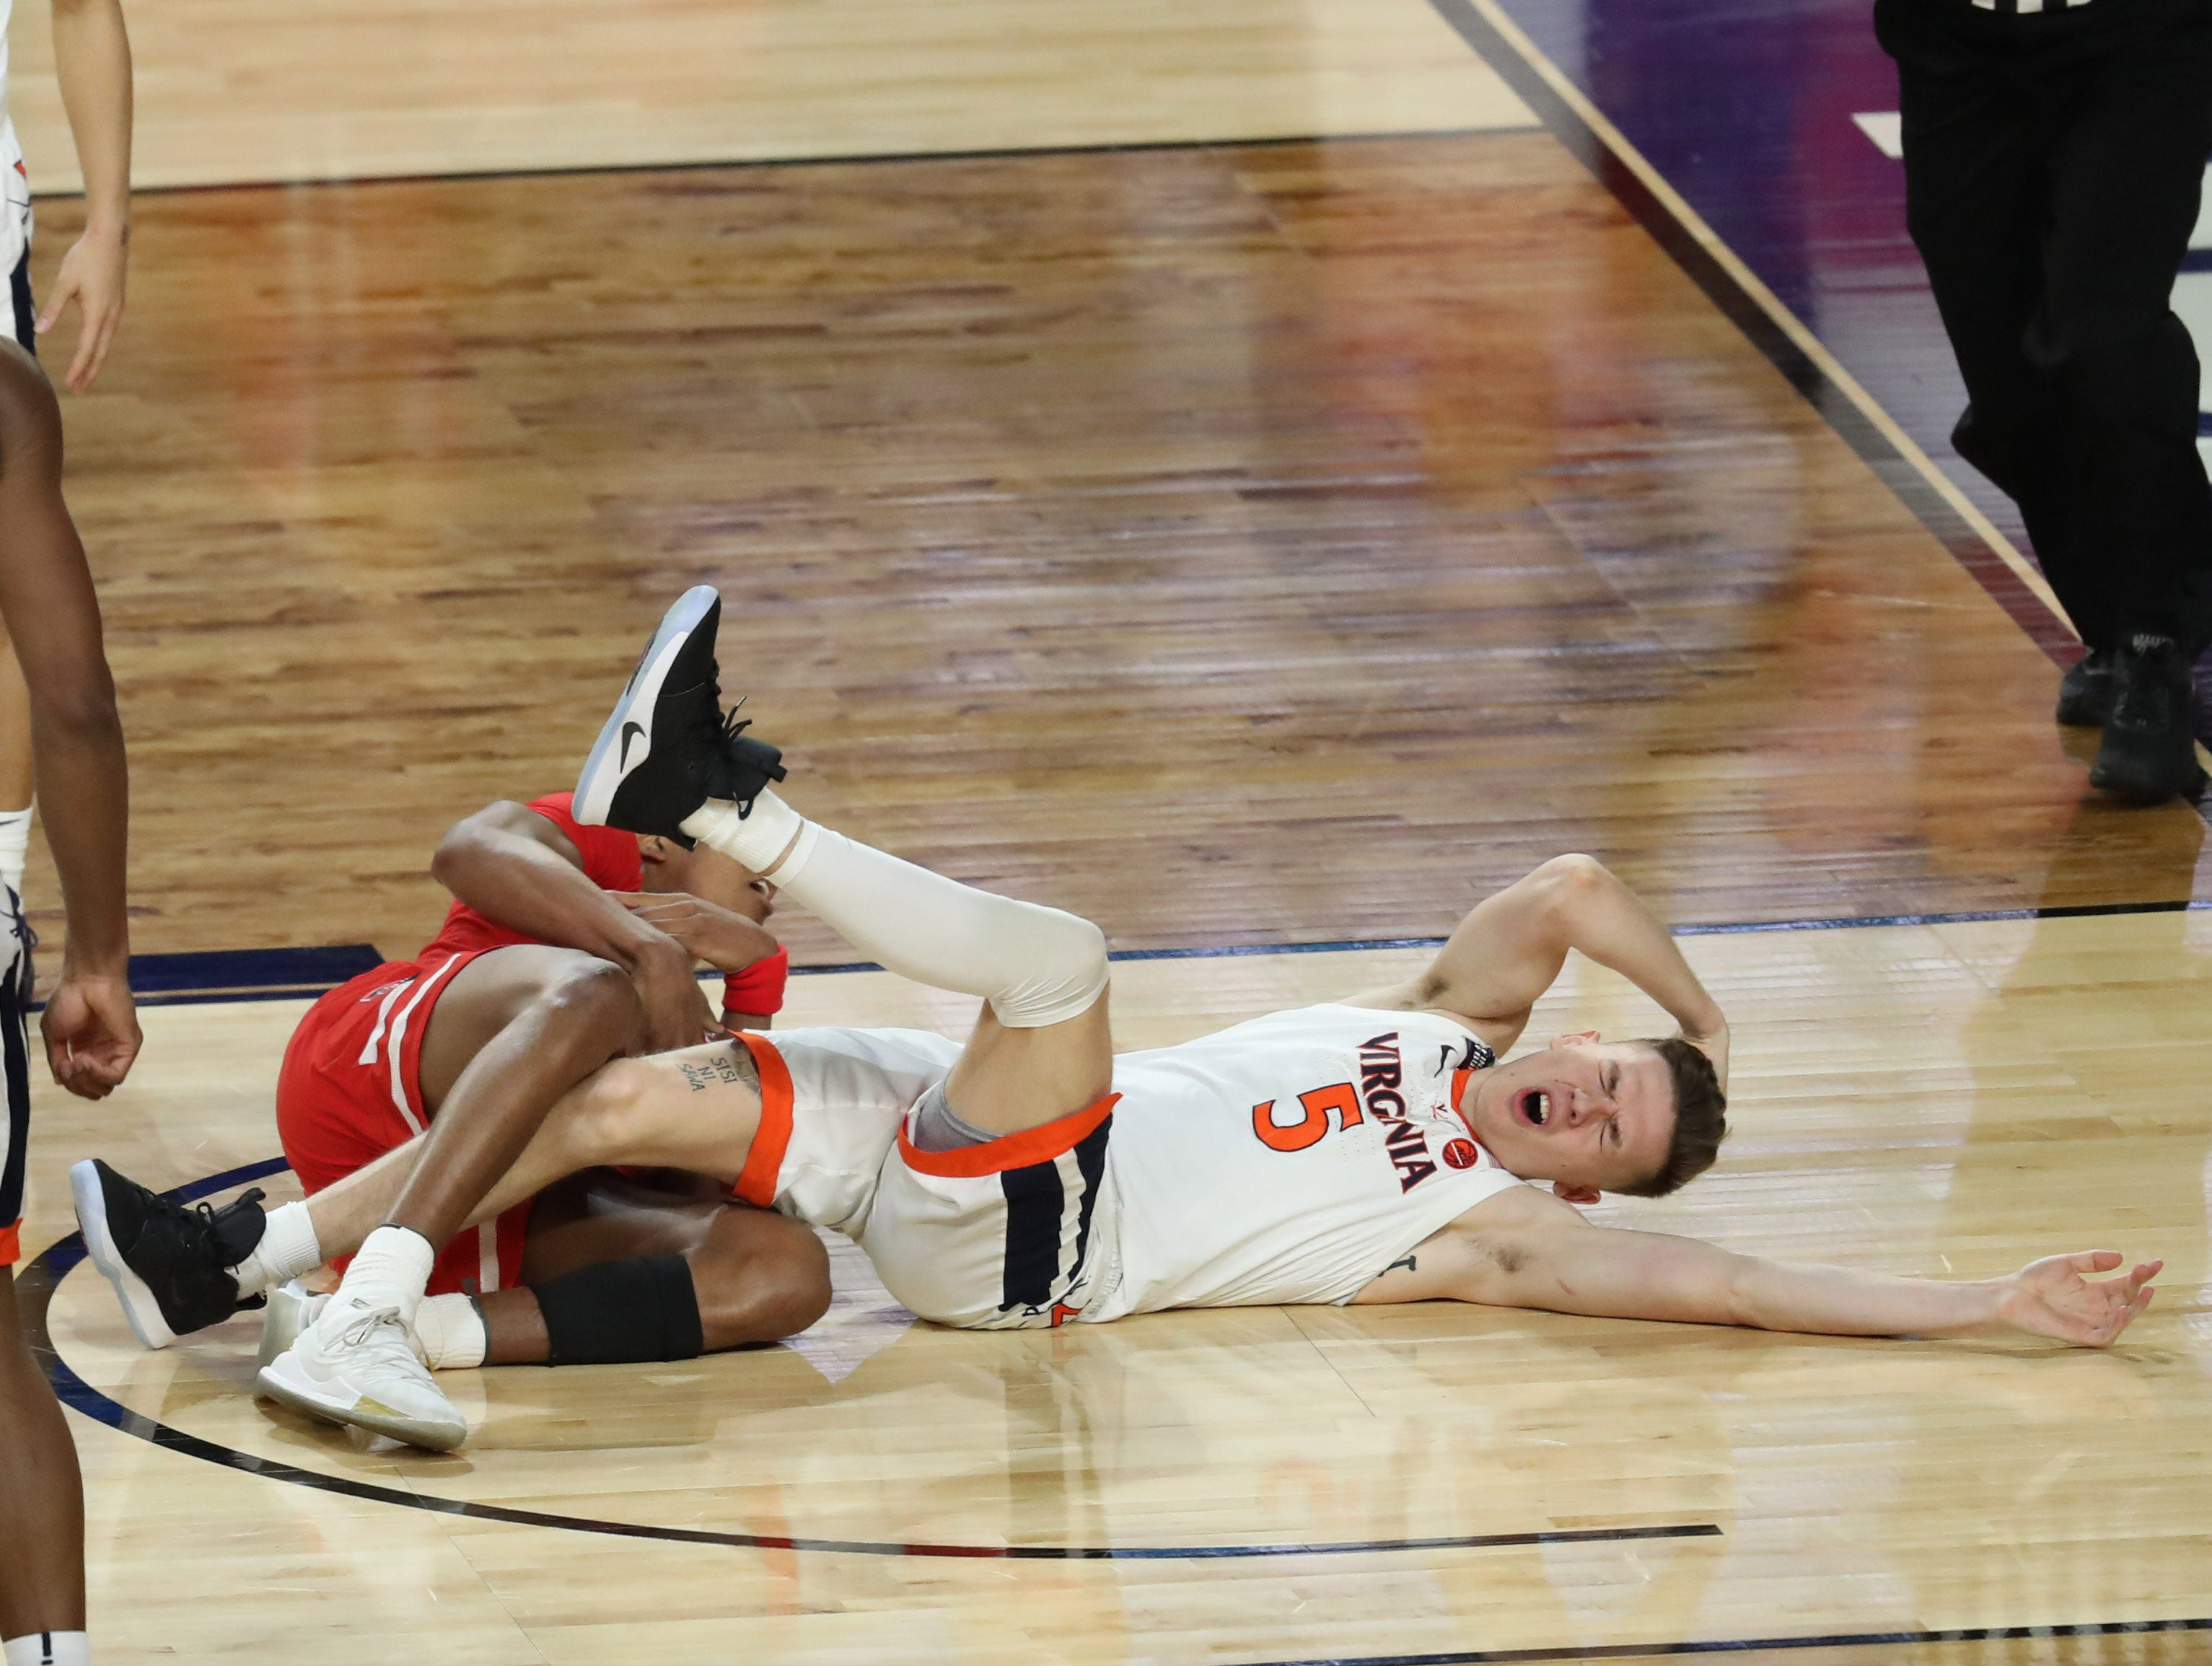 Apr 8, 2019; Minneapolis, MN, USA; Texas Tech Red Raiders guard Jarrett Culver (23) and Virginia Cavaliers guard Kyle Guy (5) fall to the ground during the second half in the championship game of the 2019 men's Final Four at US Bank Stadium. Mandatory Credit: Brace Hemmelgarn-USA TODAY Sports